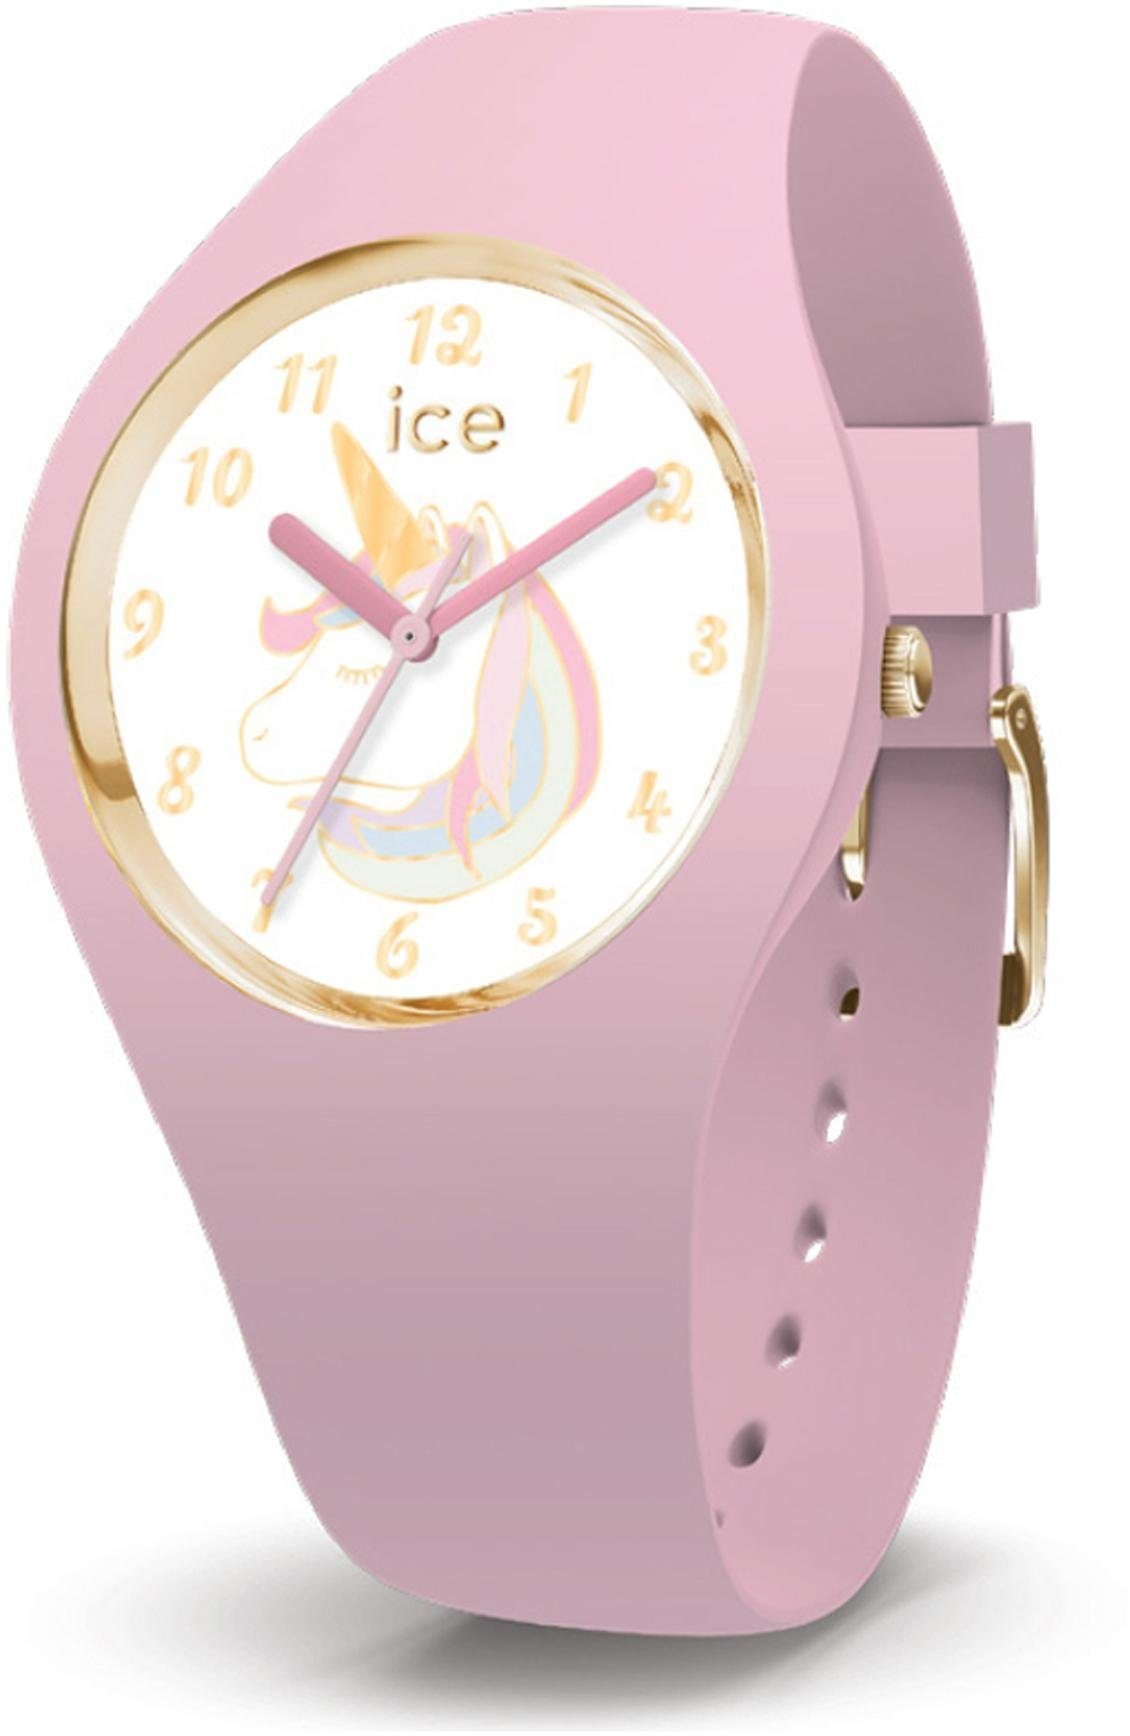 ice-watch Quarzuhr »ICE fantasia - Pink - Small - 3H, 16722«